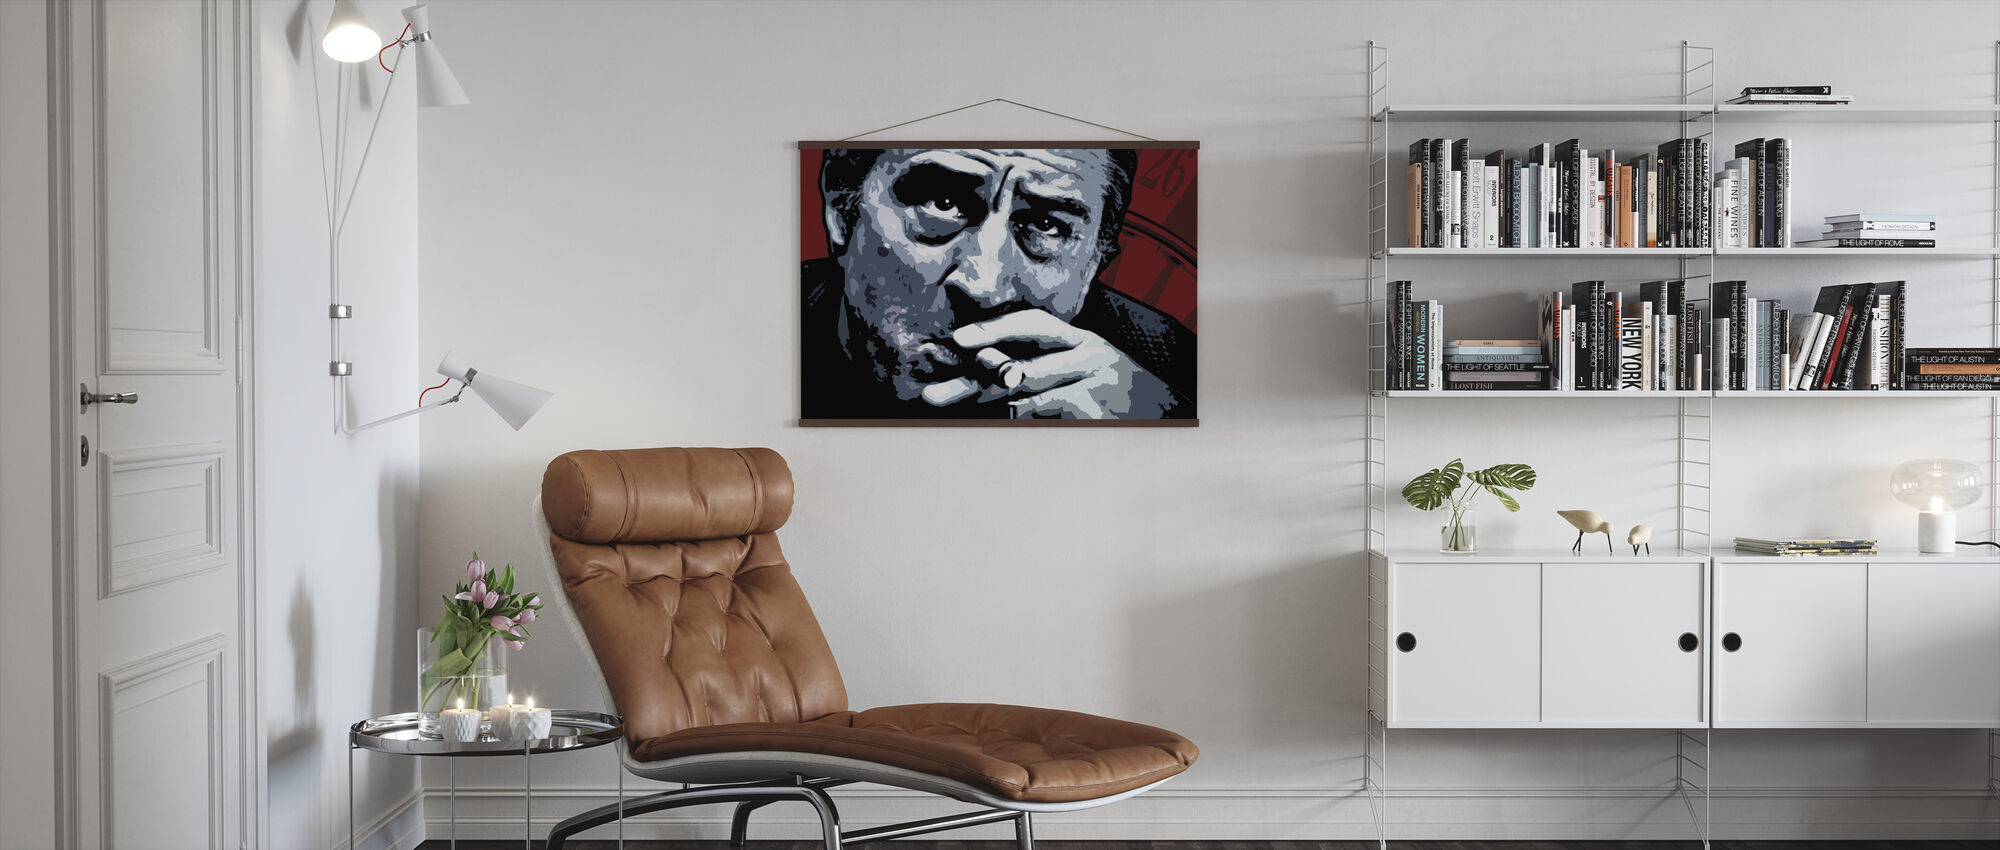 Ace - Poster - Living Room